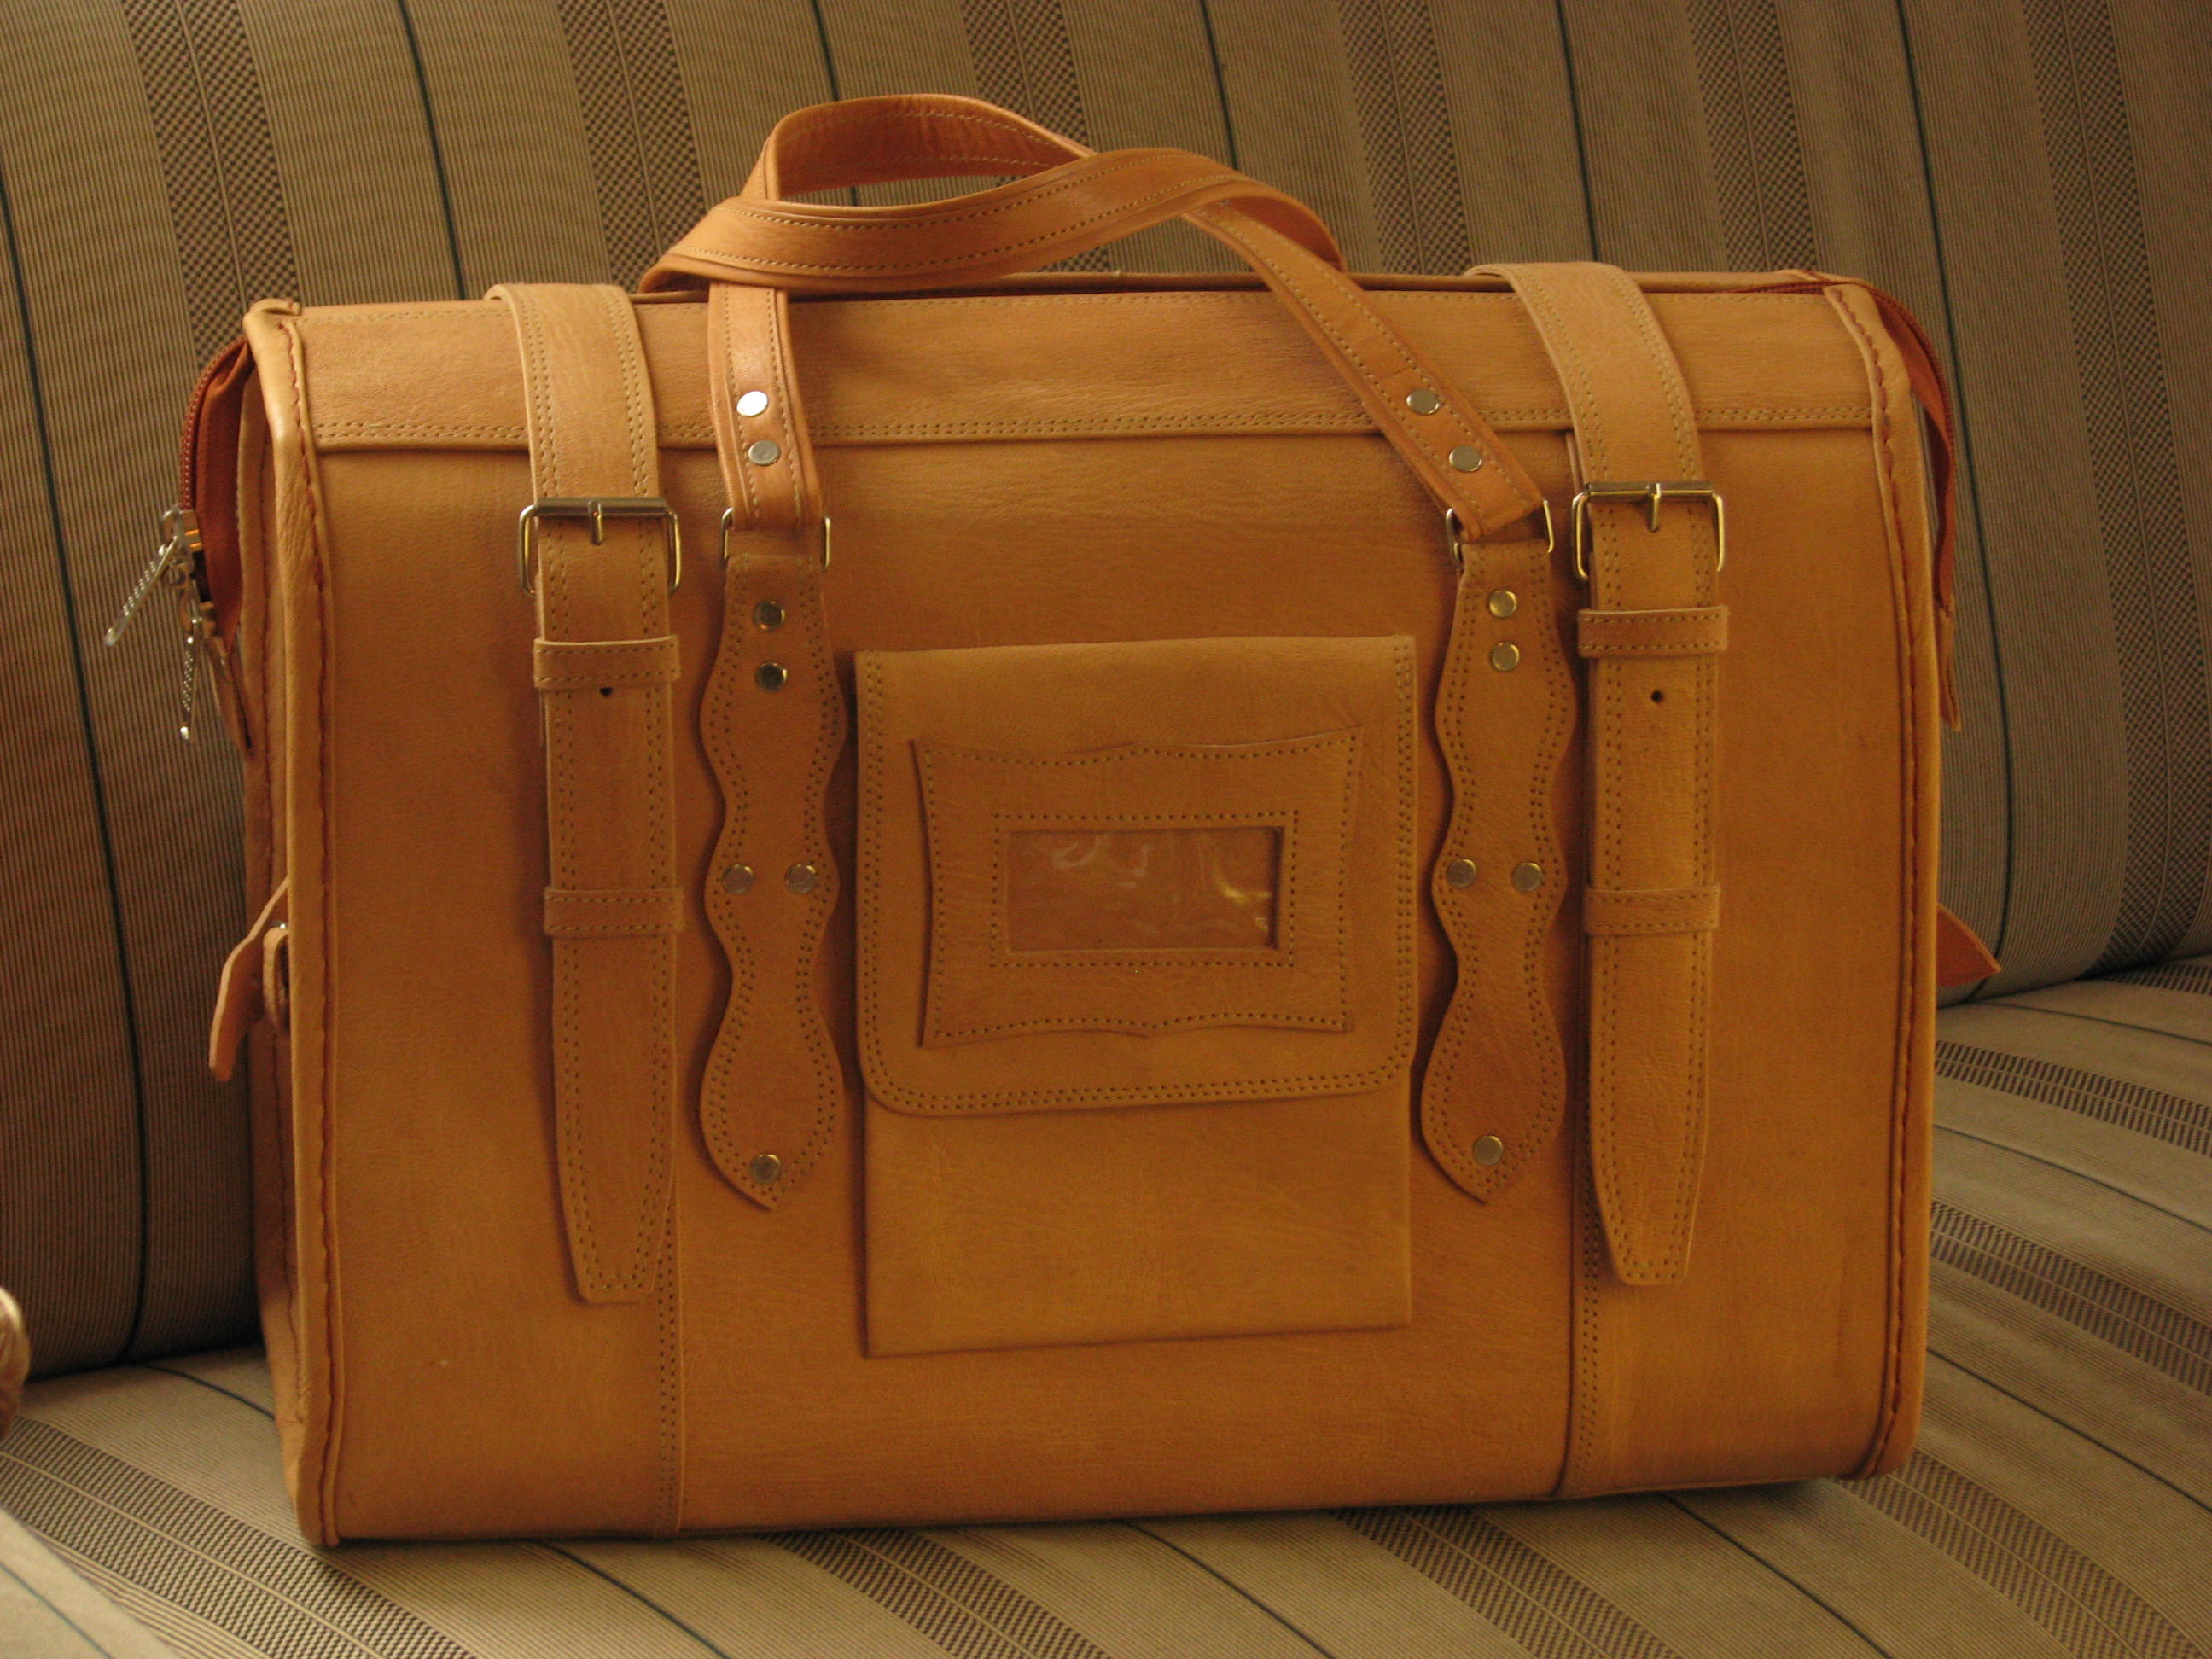 Cabin-Size Travel Bag Marco Polo - Genuine Leather Travel Bag ...